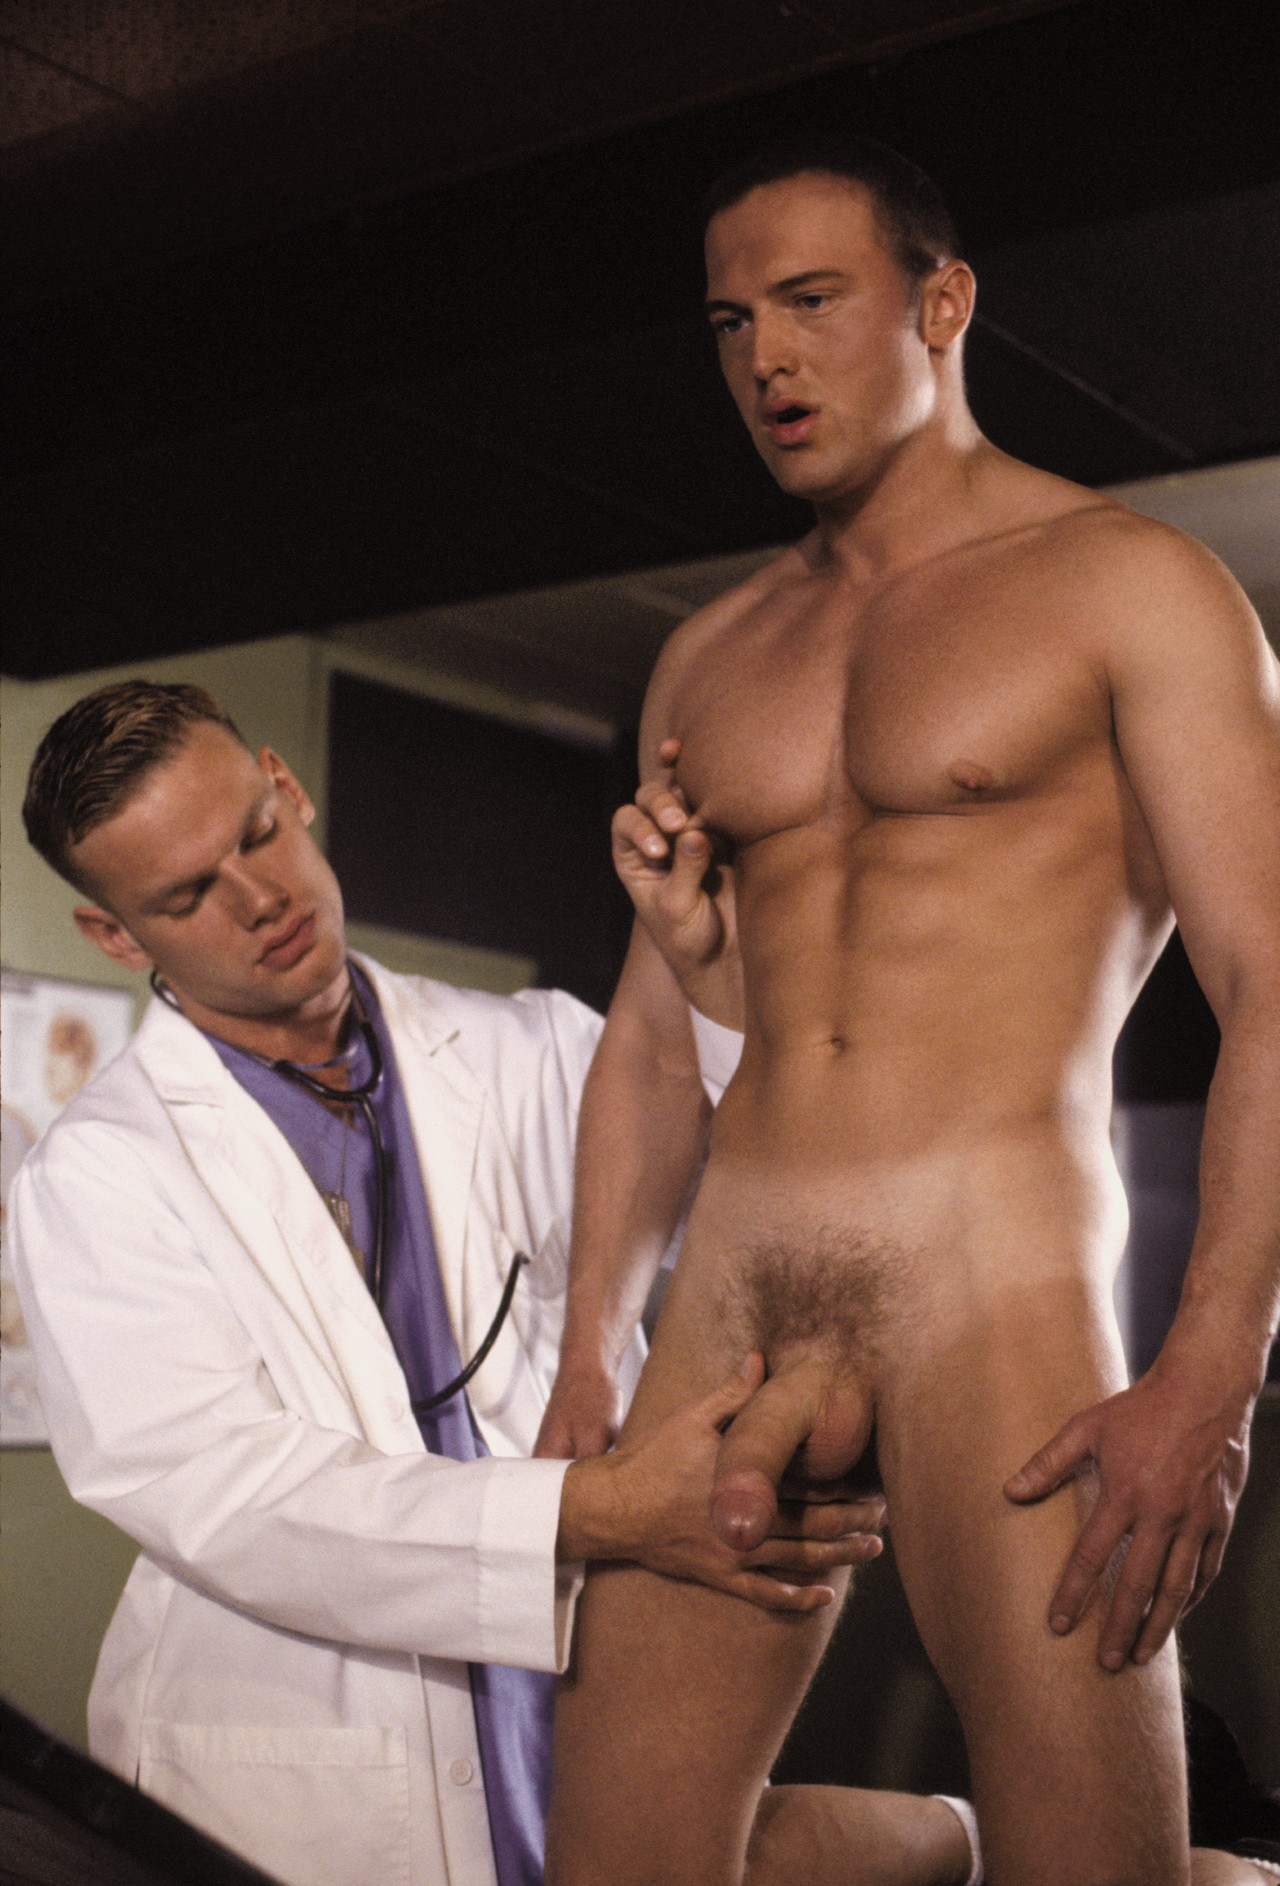 Steve o'donnell gay porn pics